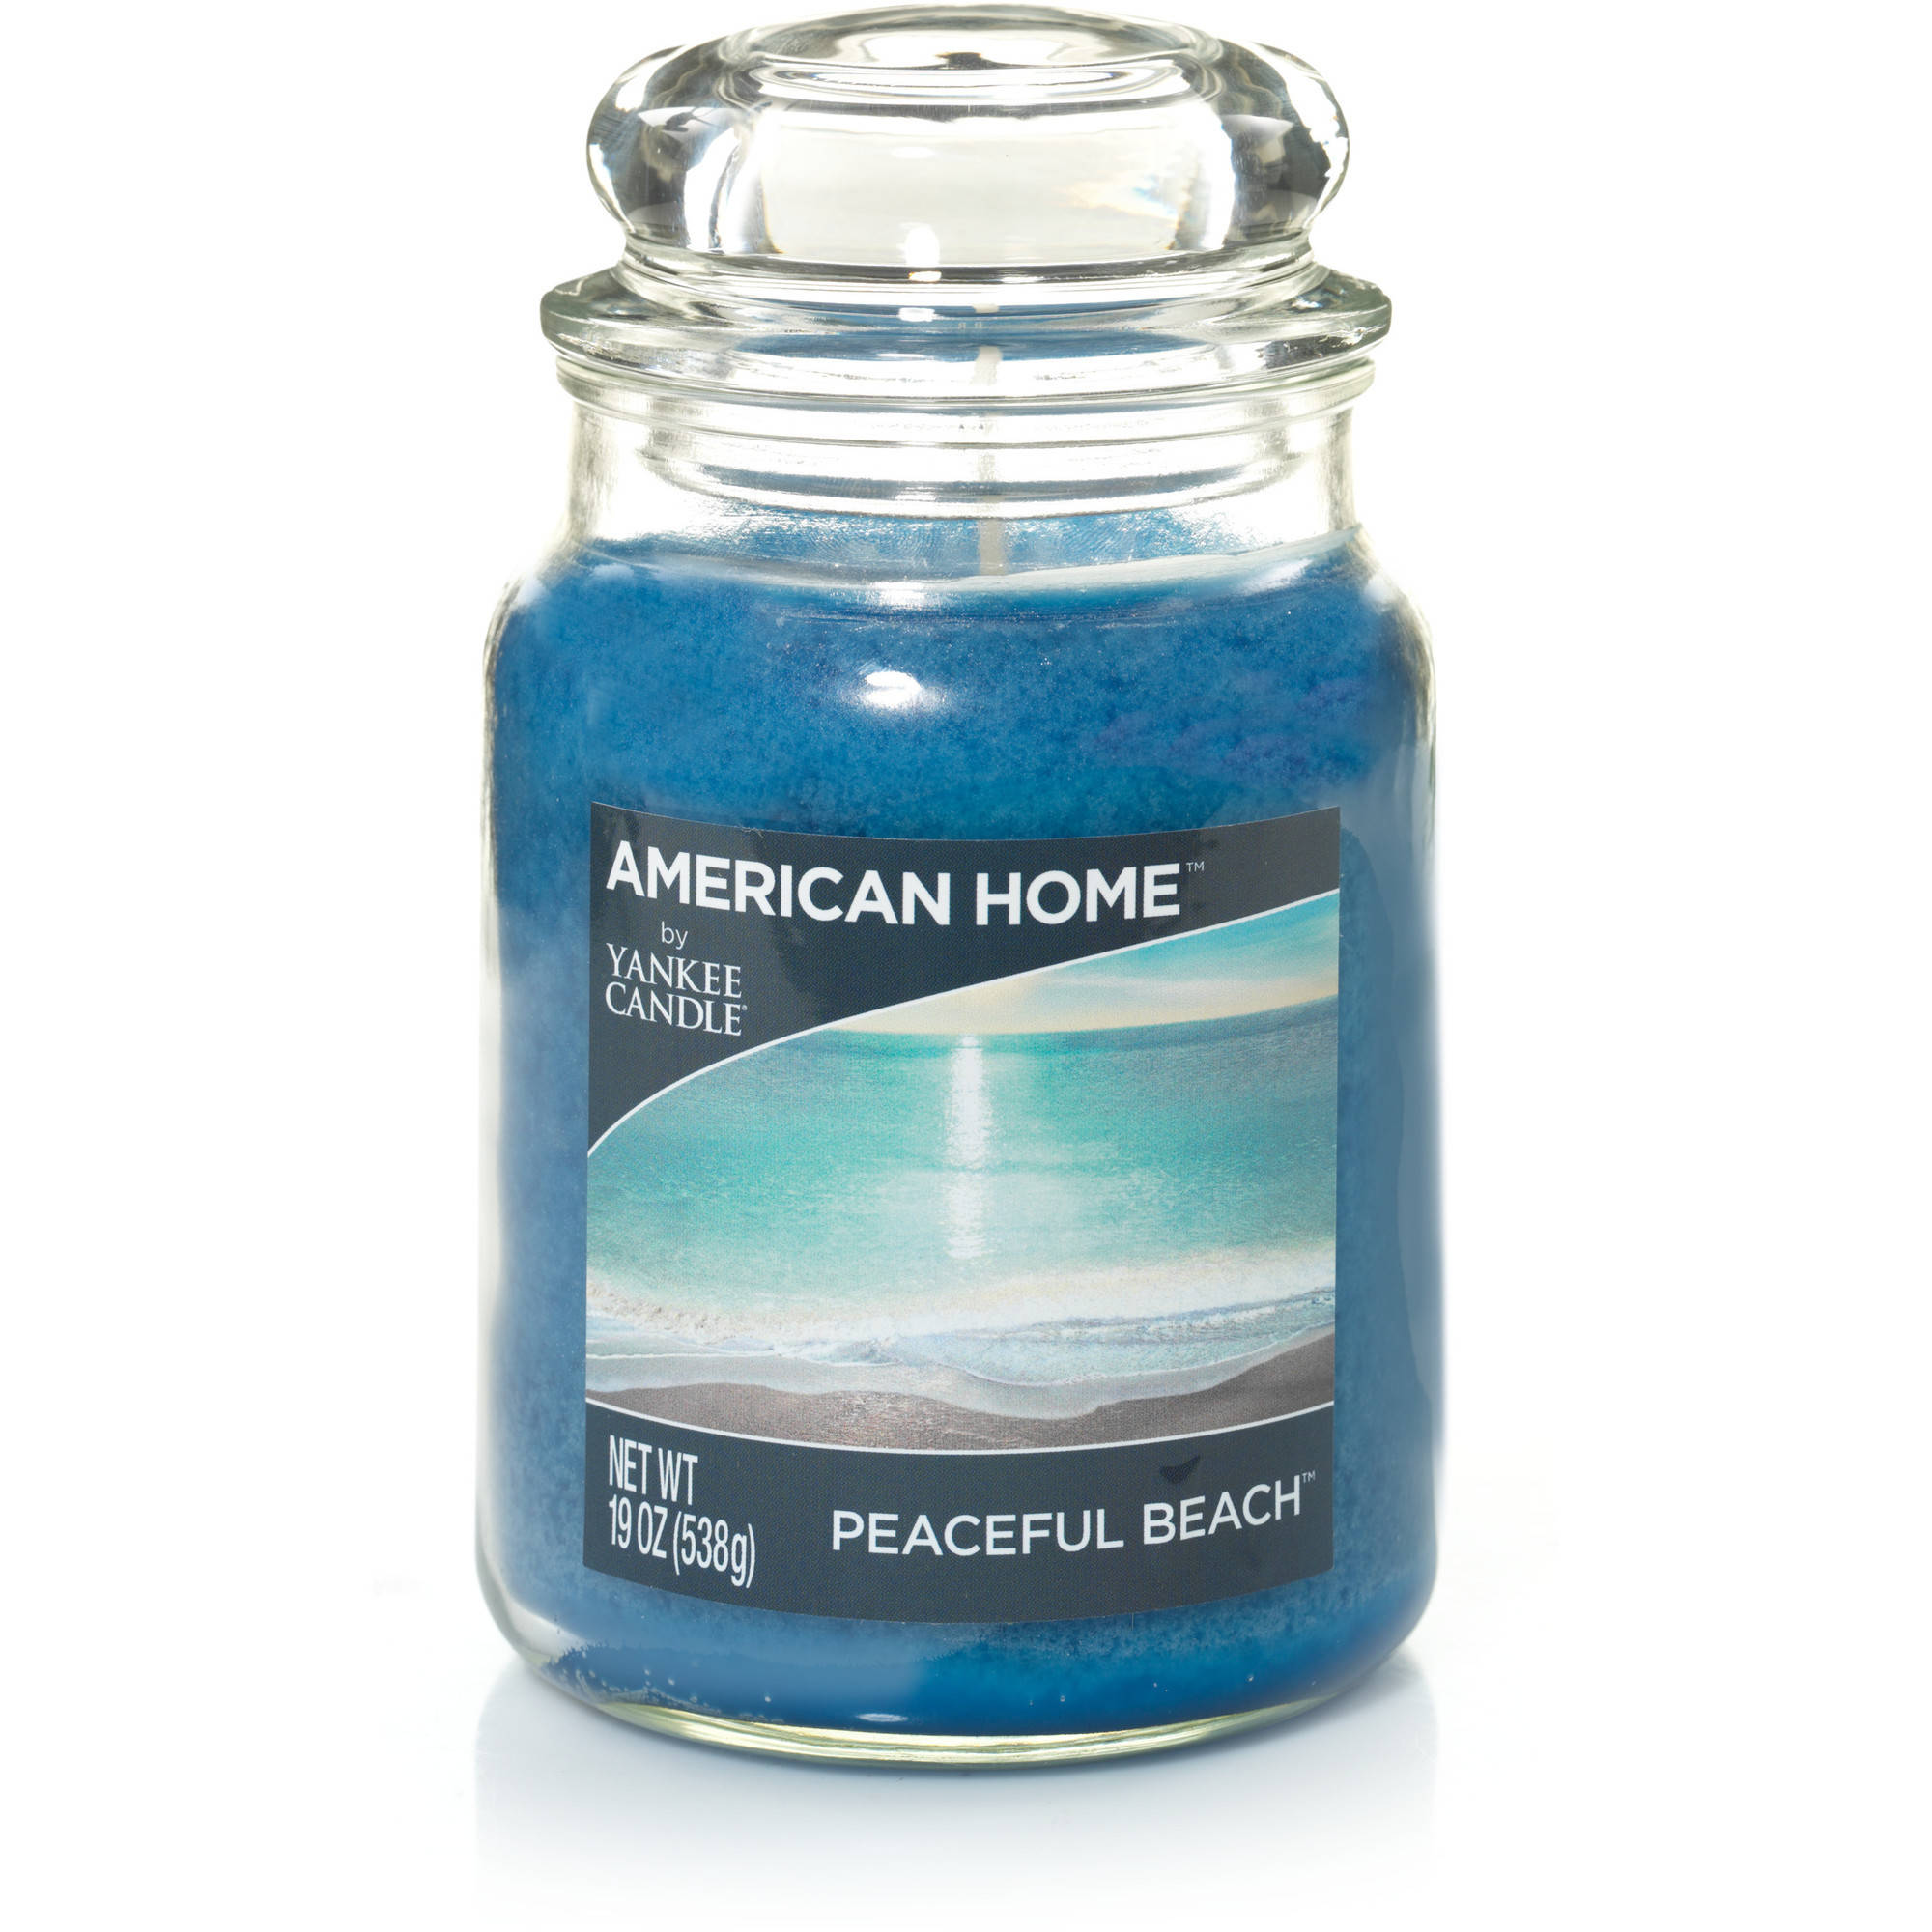 American Home by Yankee Candle Peaceful Beach, 19 oz Large Jar